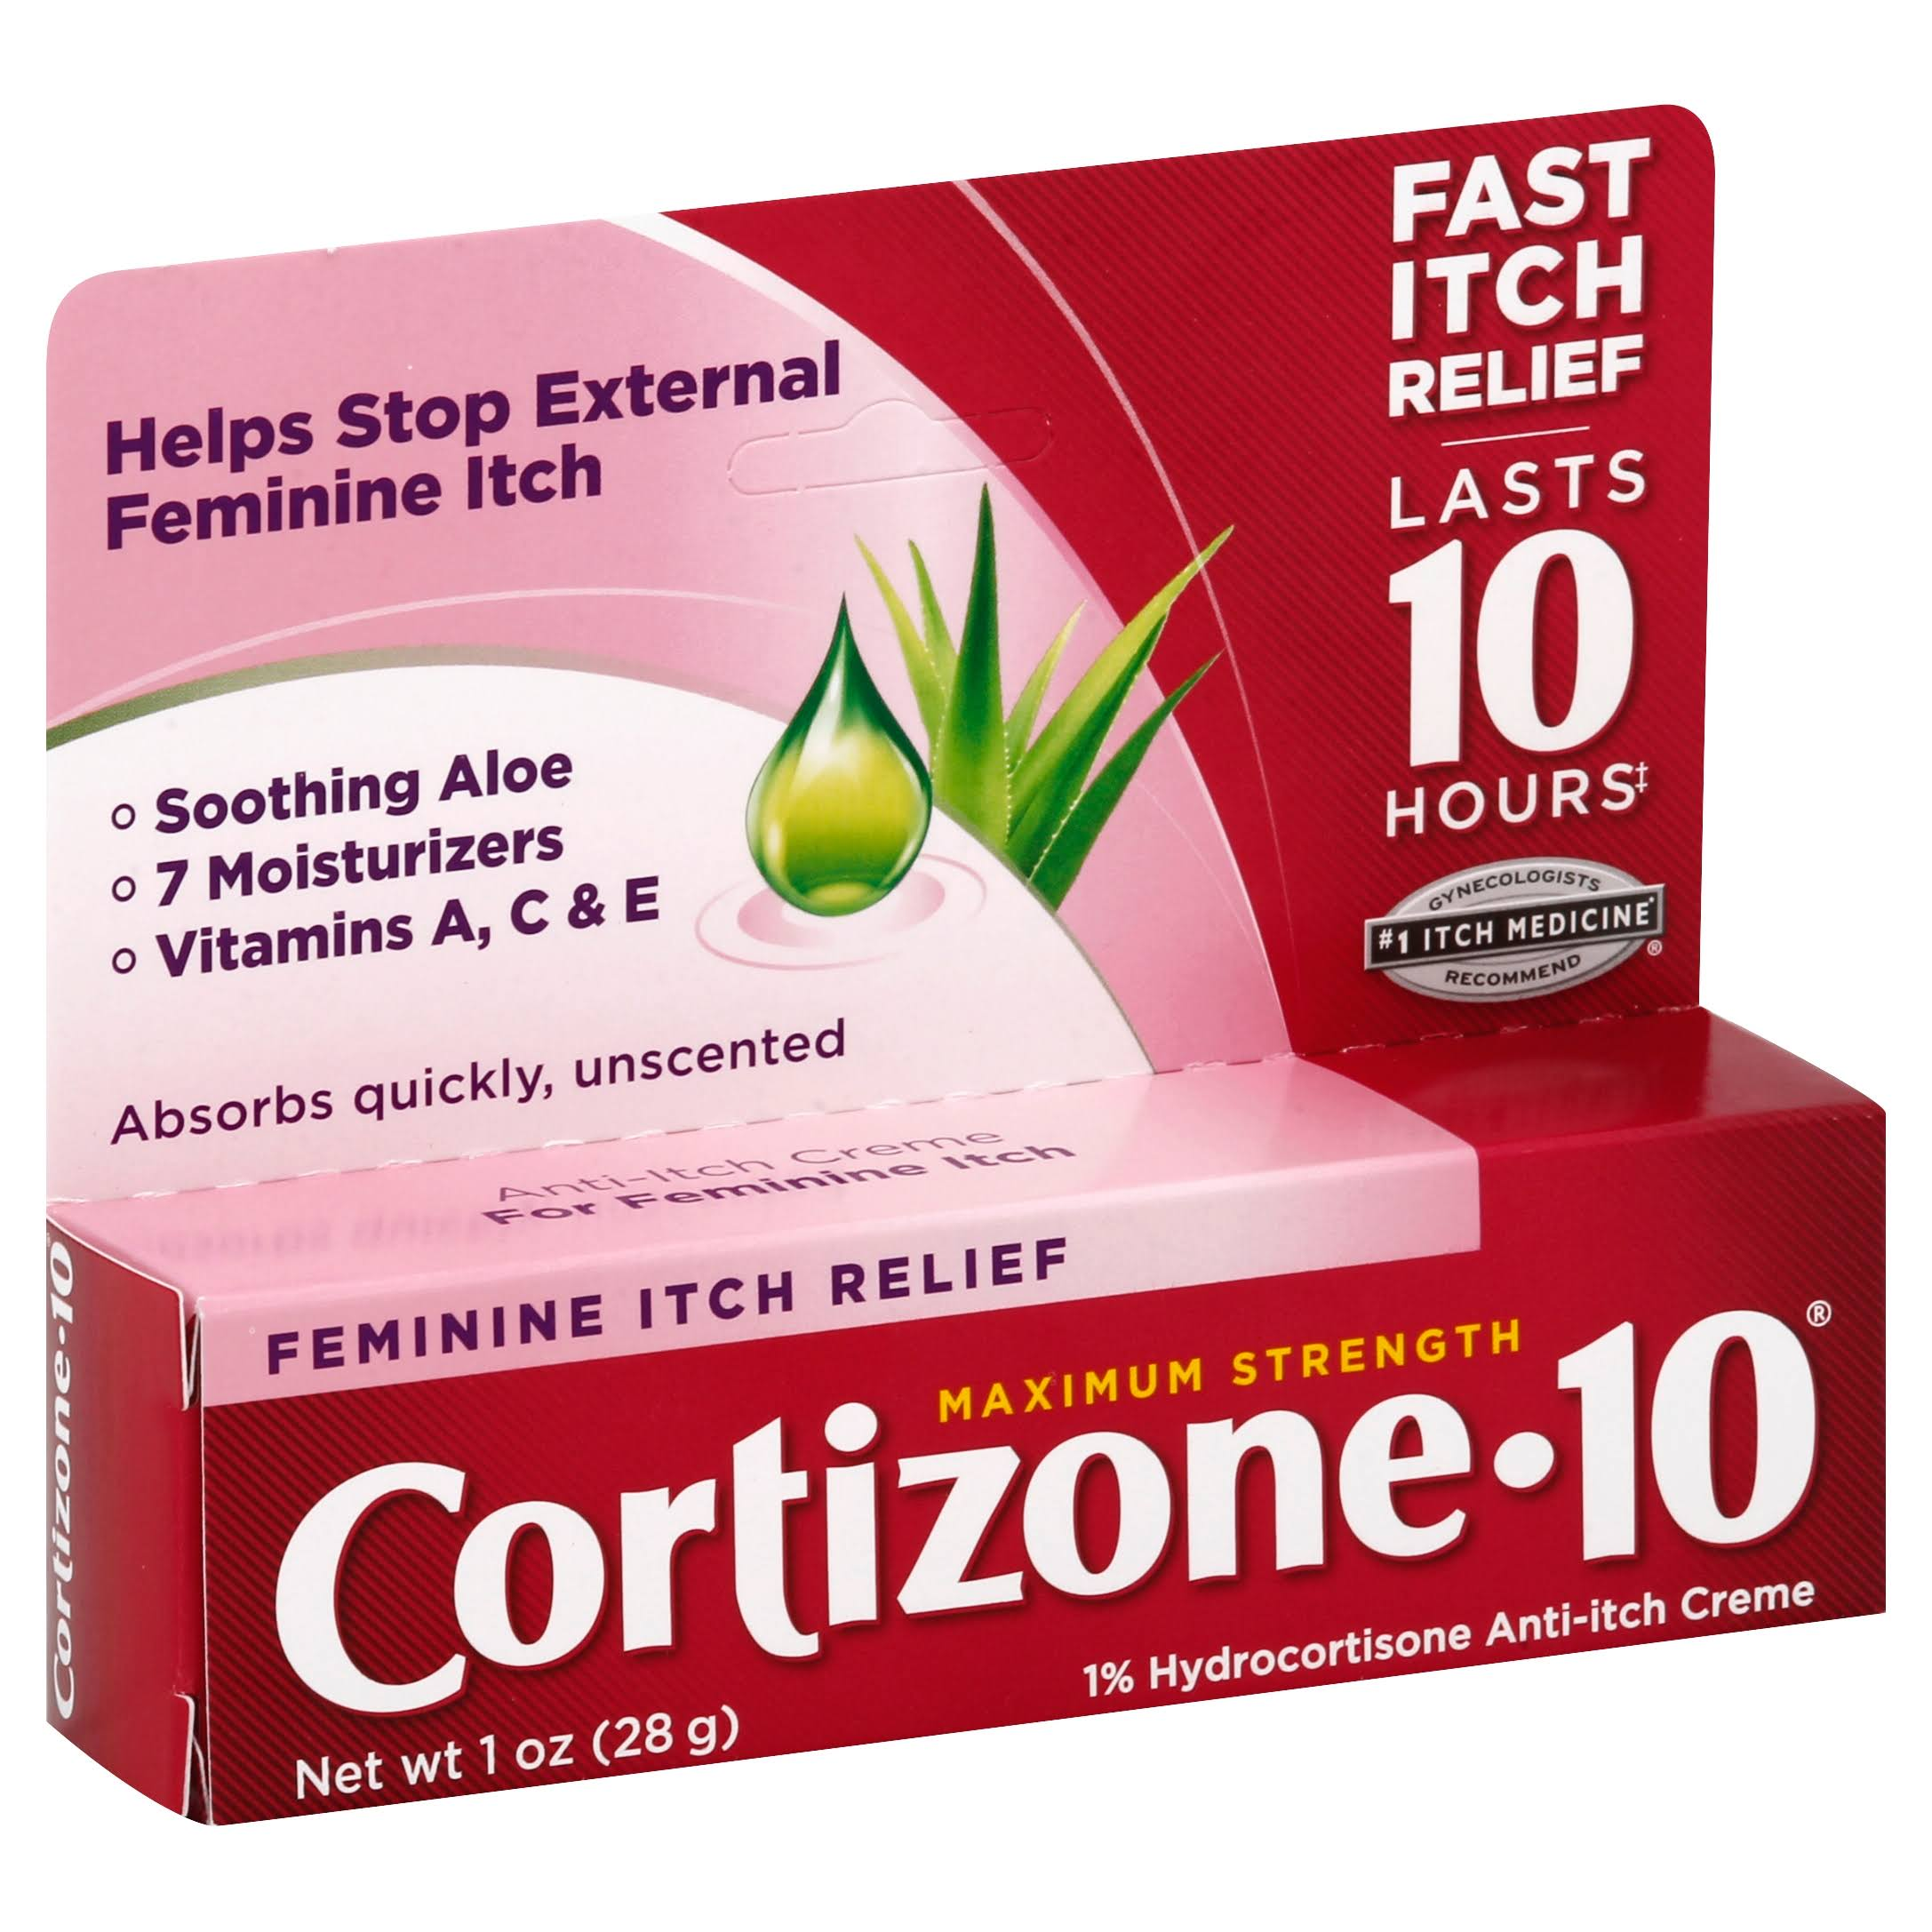 Cortizone-10 Maximum Strength Feminine Relief Anti-Itch Creme - 1oz